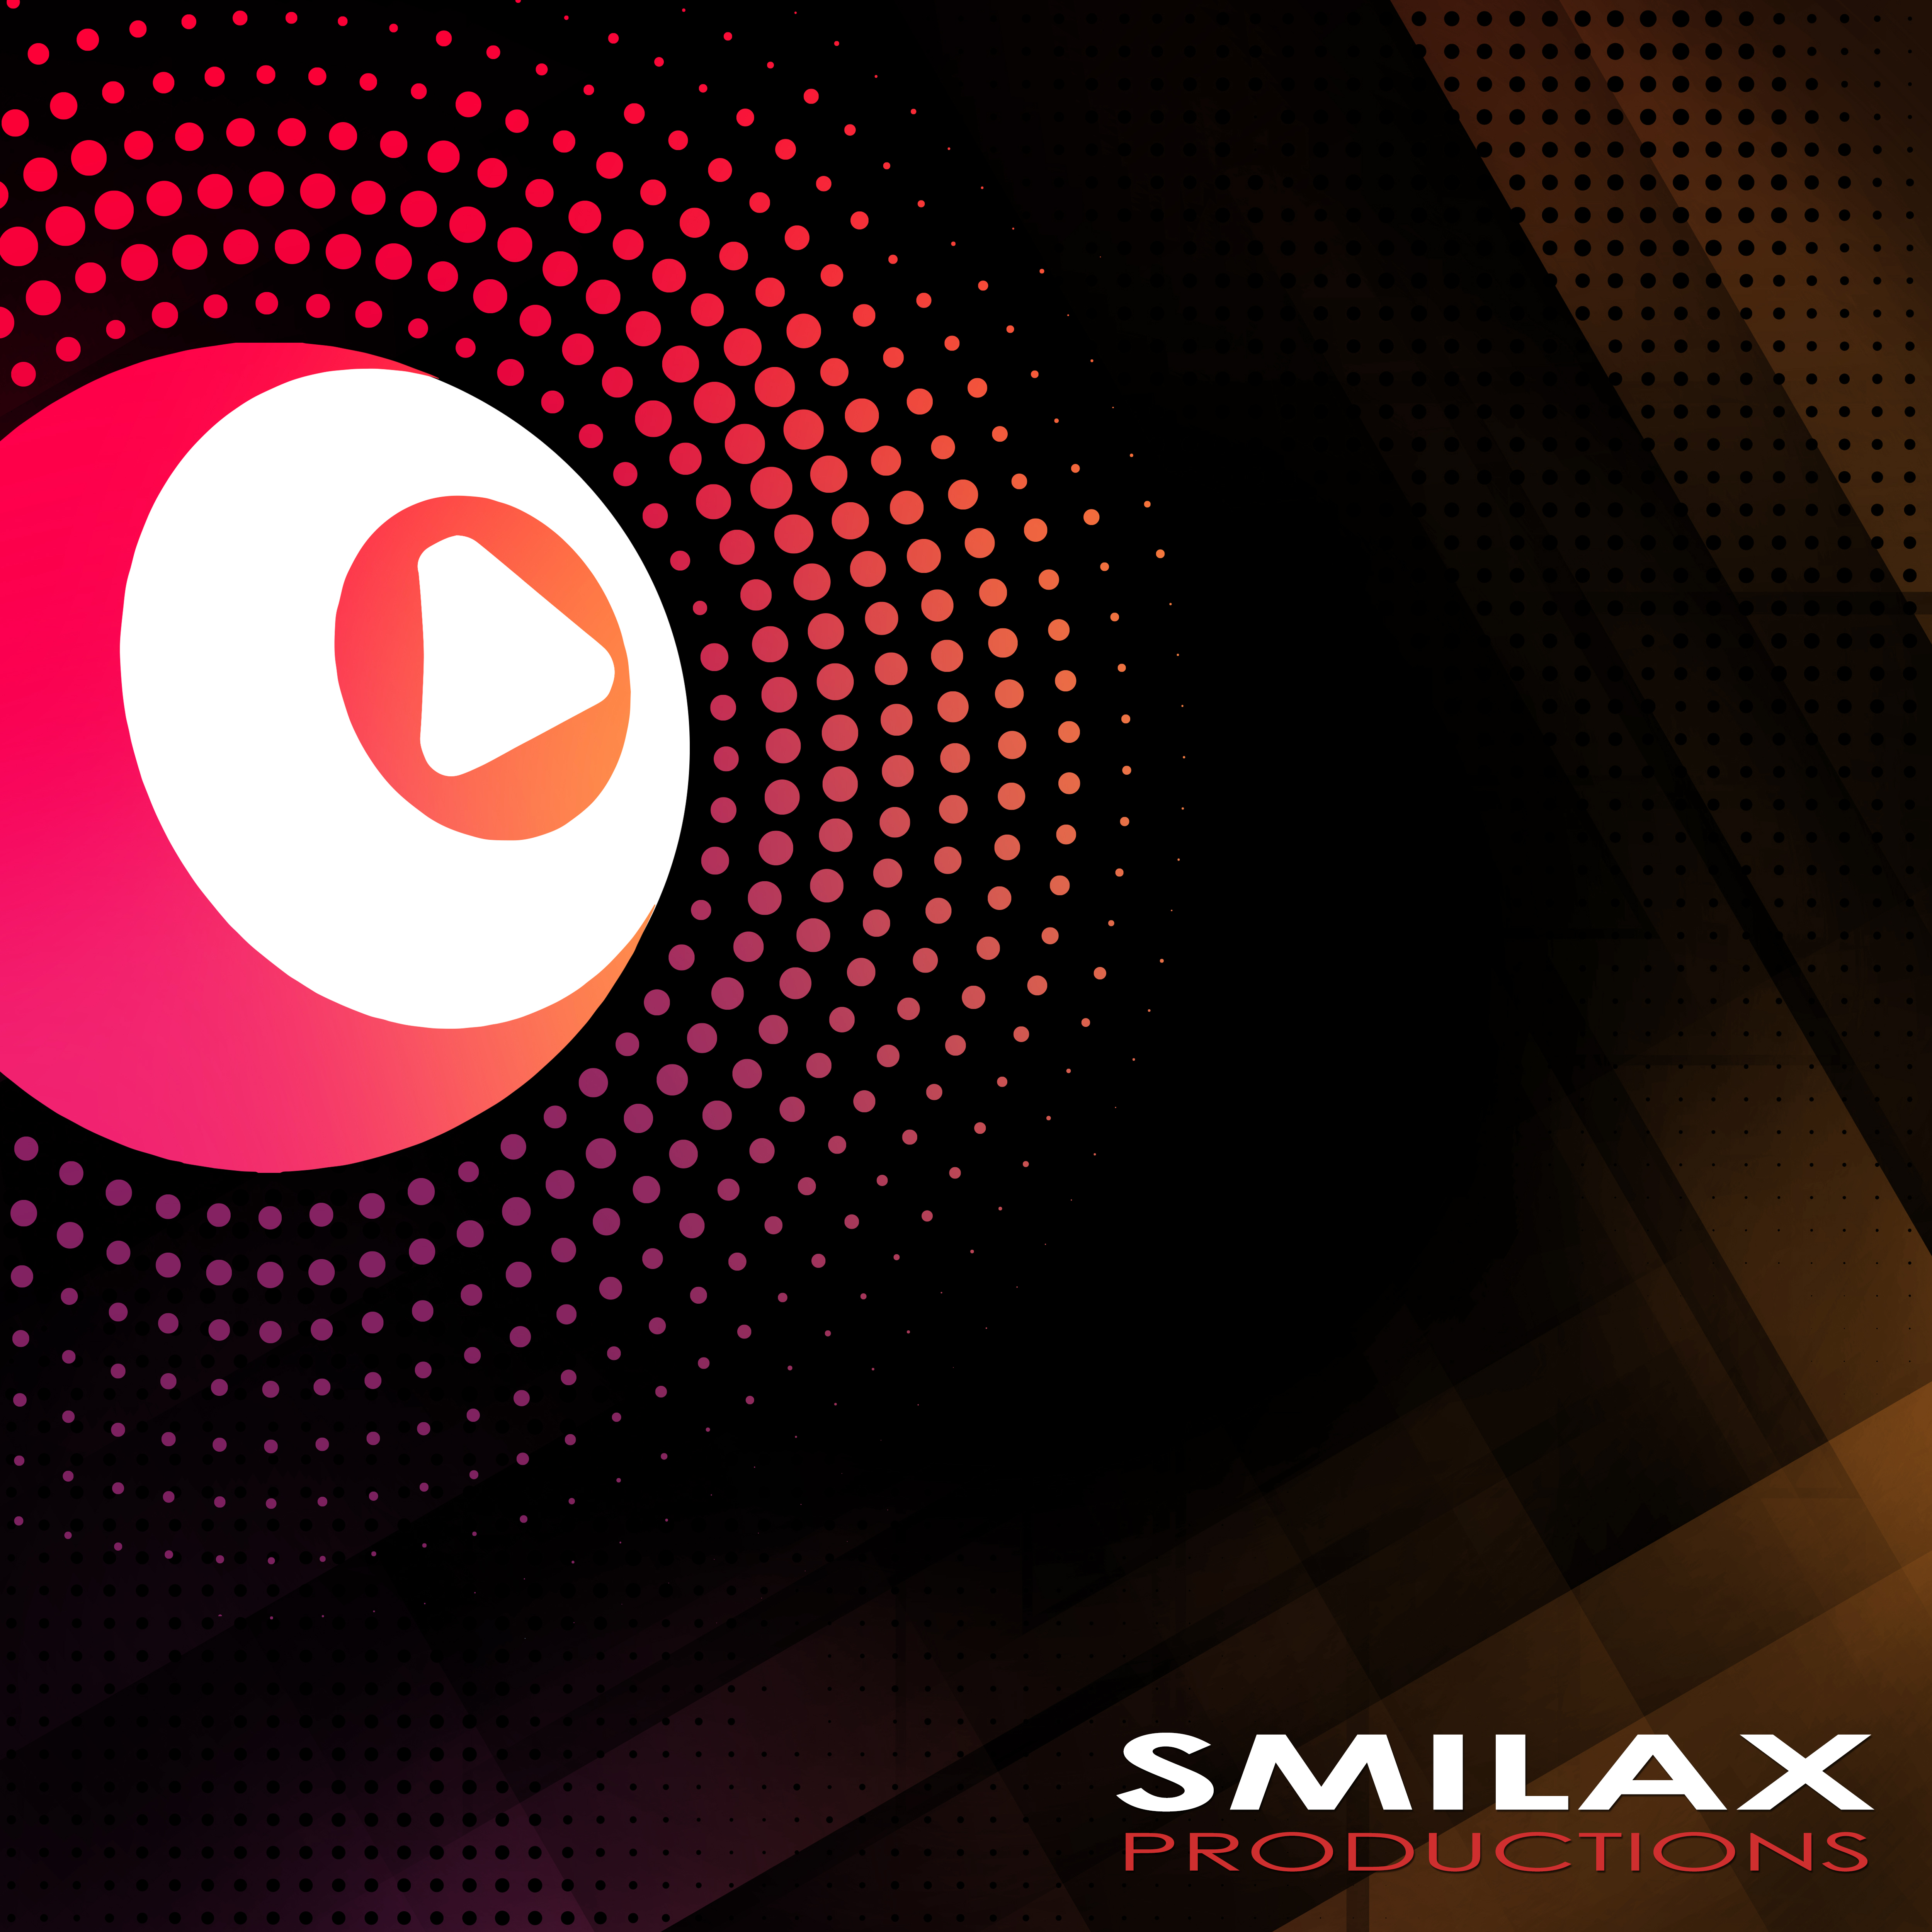 Smilax Productions